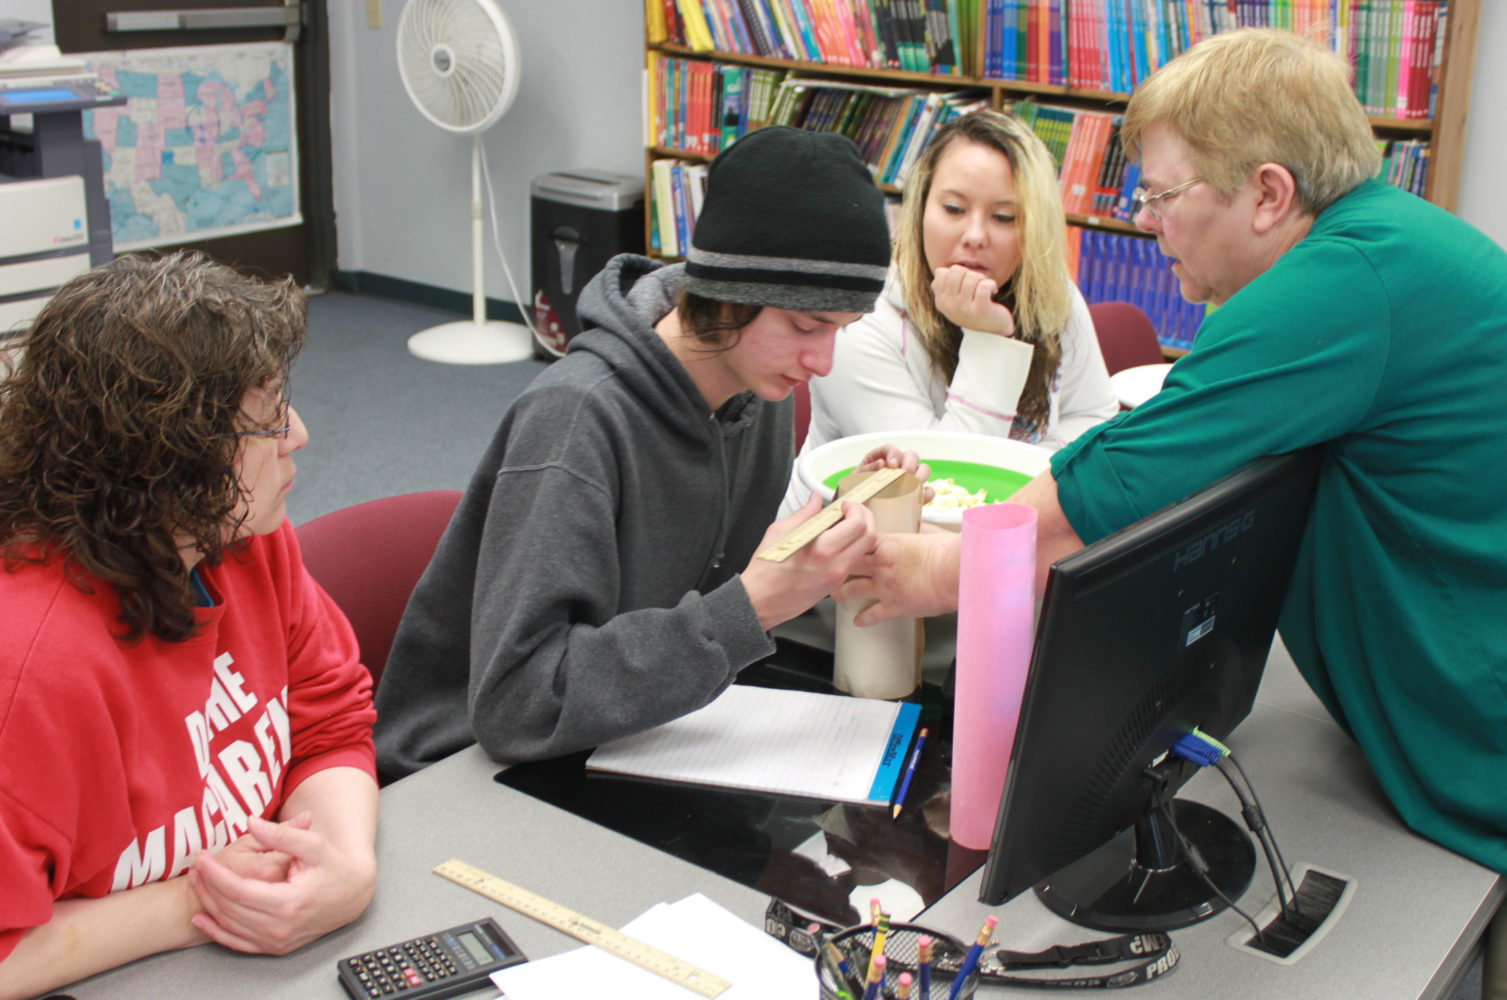 Extension Program Focuses on Adult Education and Literacy